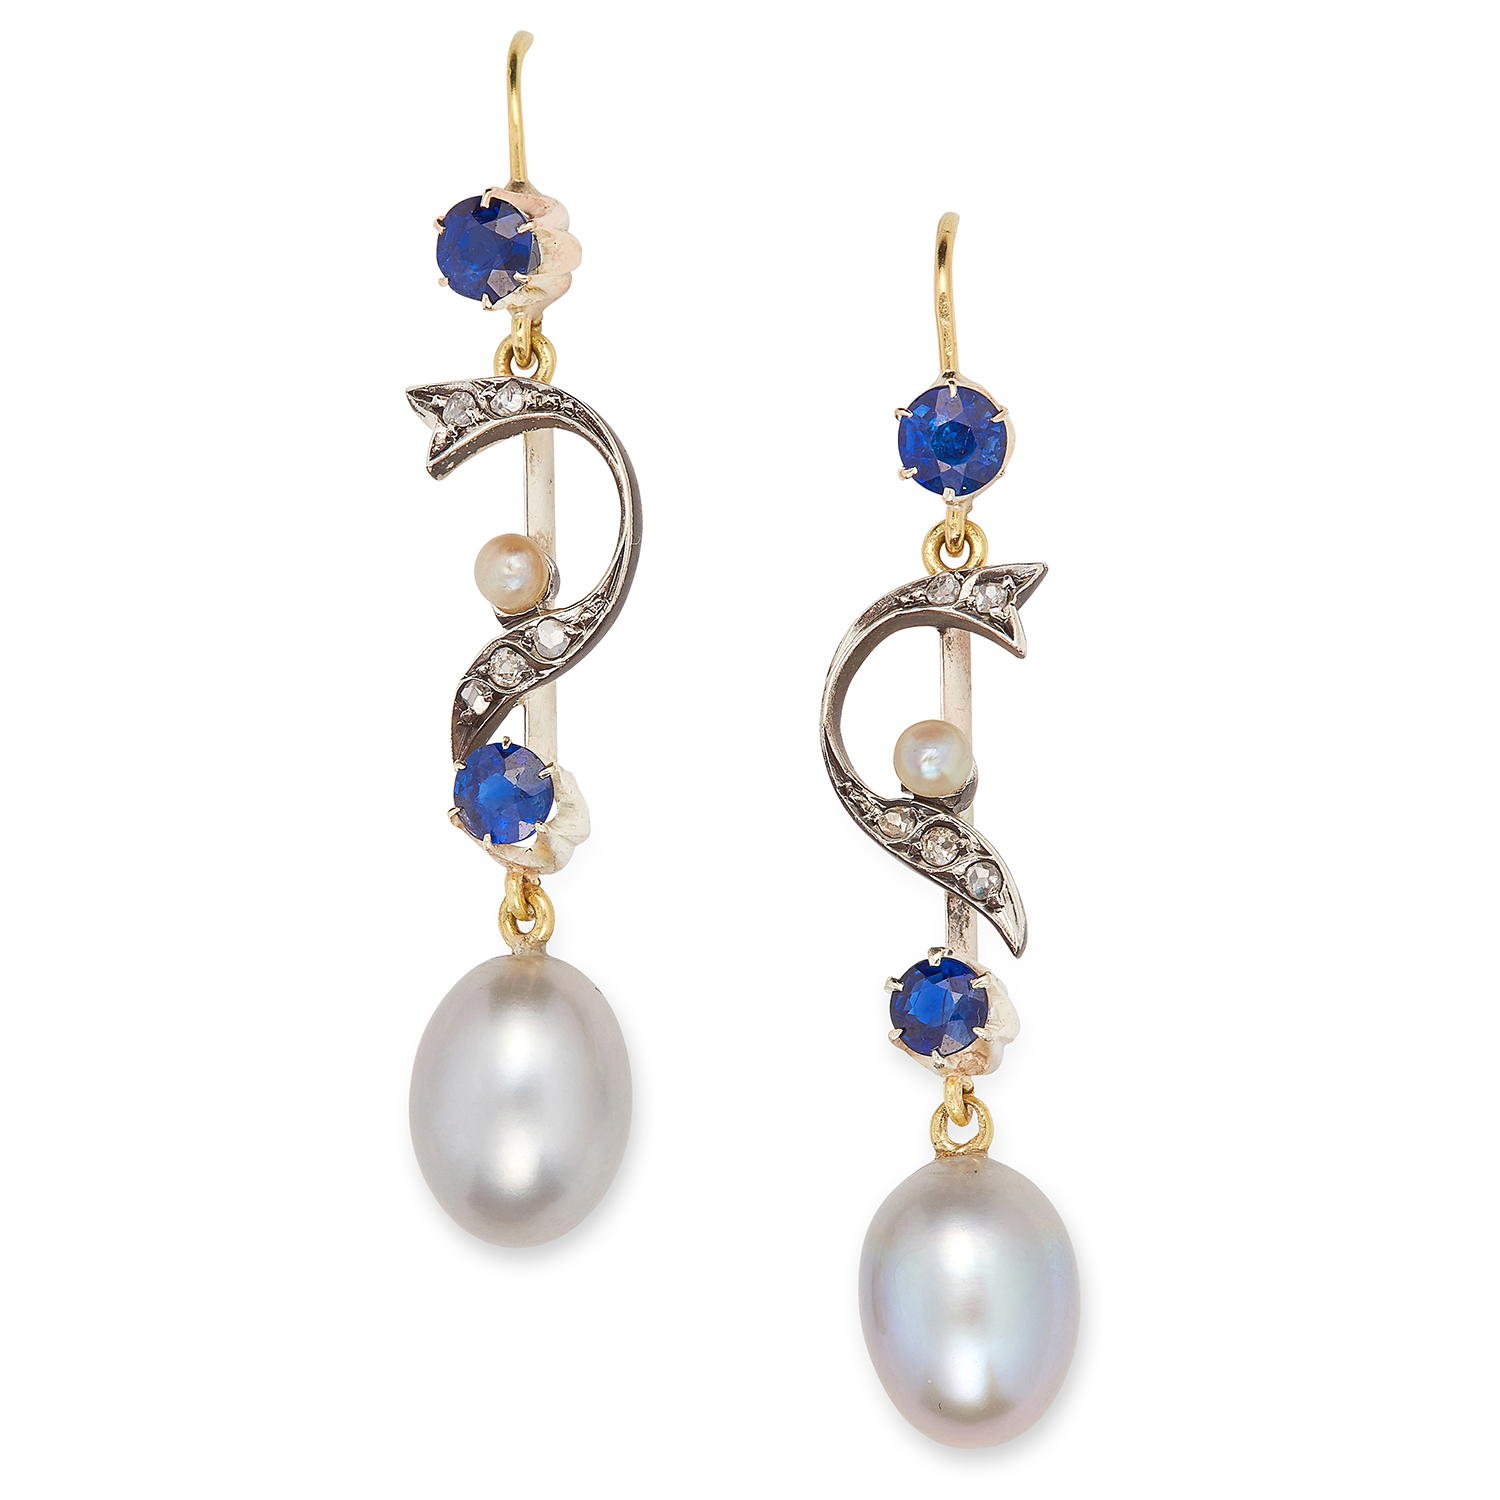 Los 10 - ANTIQUE PEARL, SAPPHIRE AND DIAMOND EARRINGS set with round cut sapphires and rose cut diamonds,